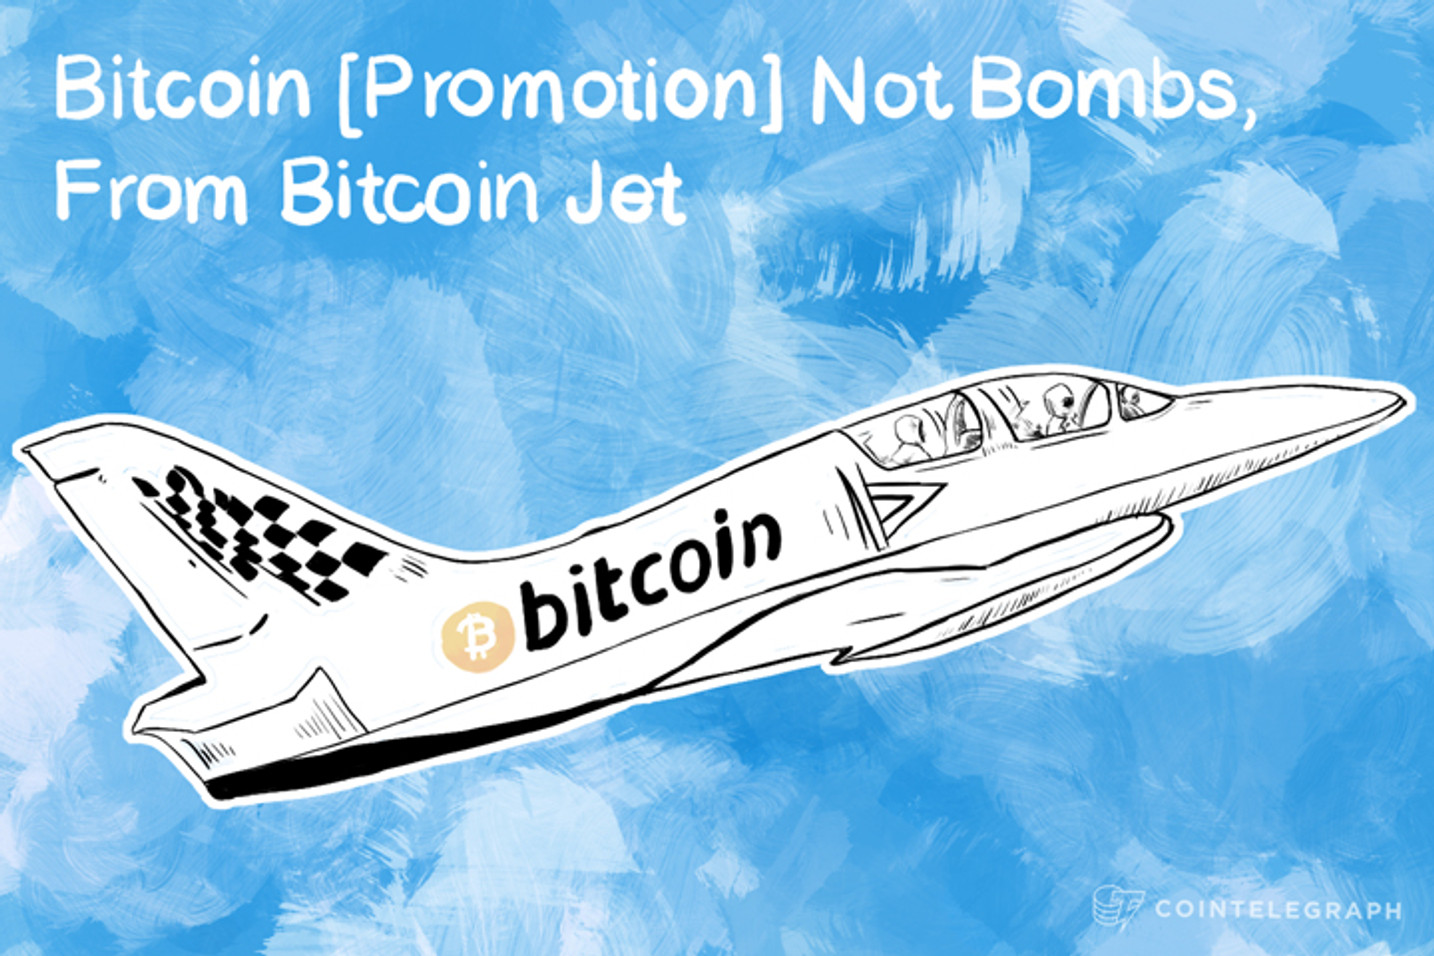 Bitcoin [Promotion] Not Bombs, From Bitcoin Jet